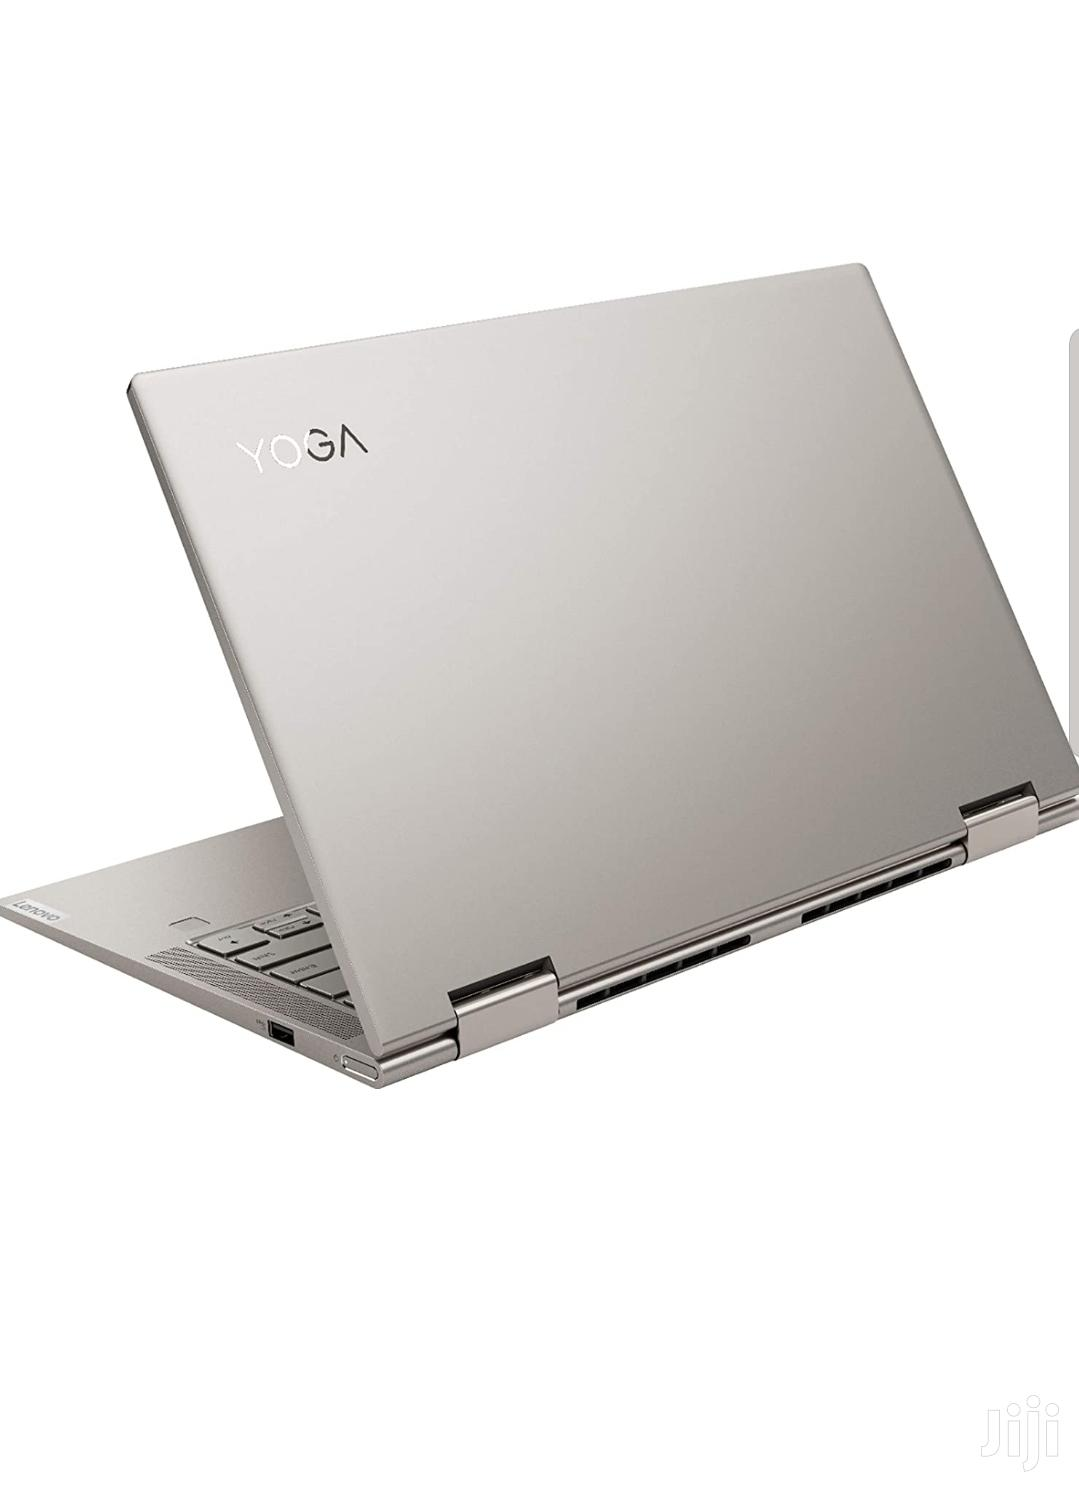 New Laptop Lenovo 8GB Intel Core I5 SSD 256GB | Laptops & Computers for sale in North Labone, Greater Accra, Ghana